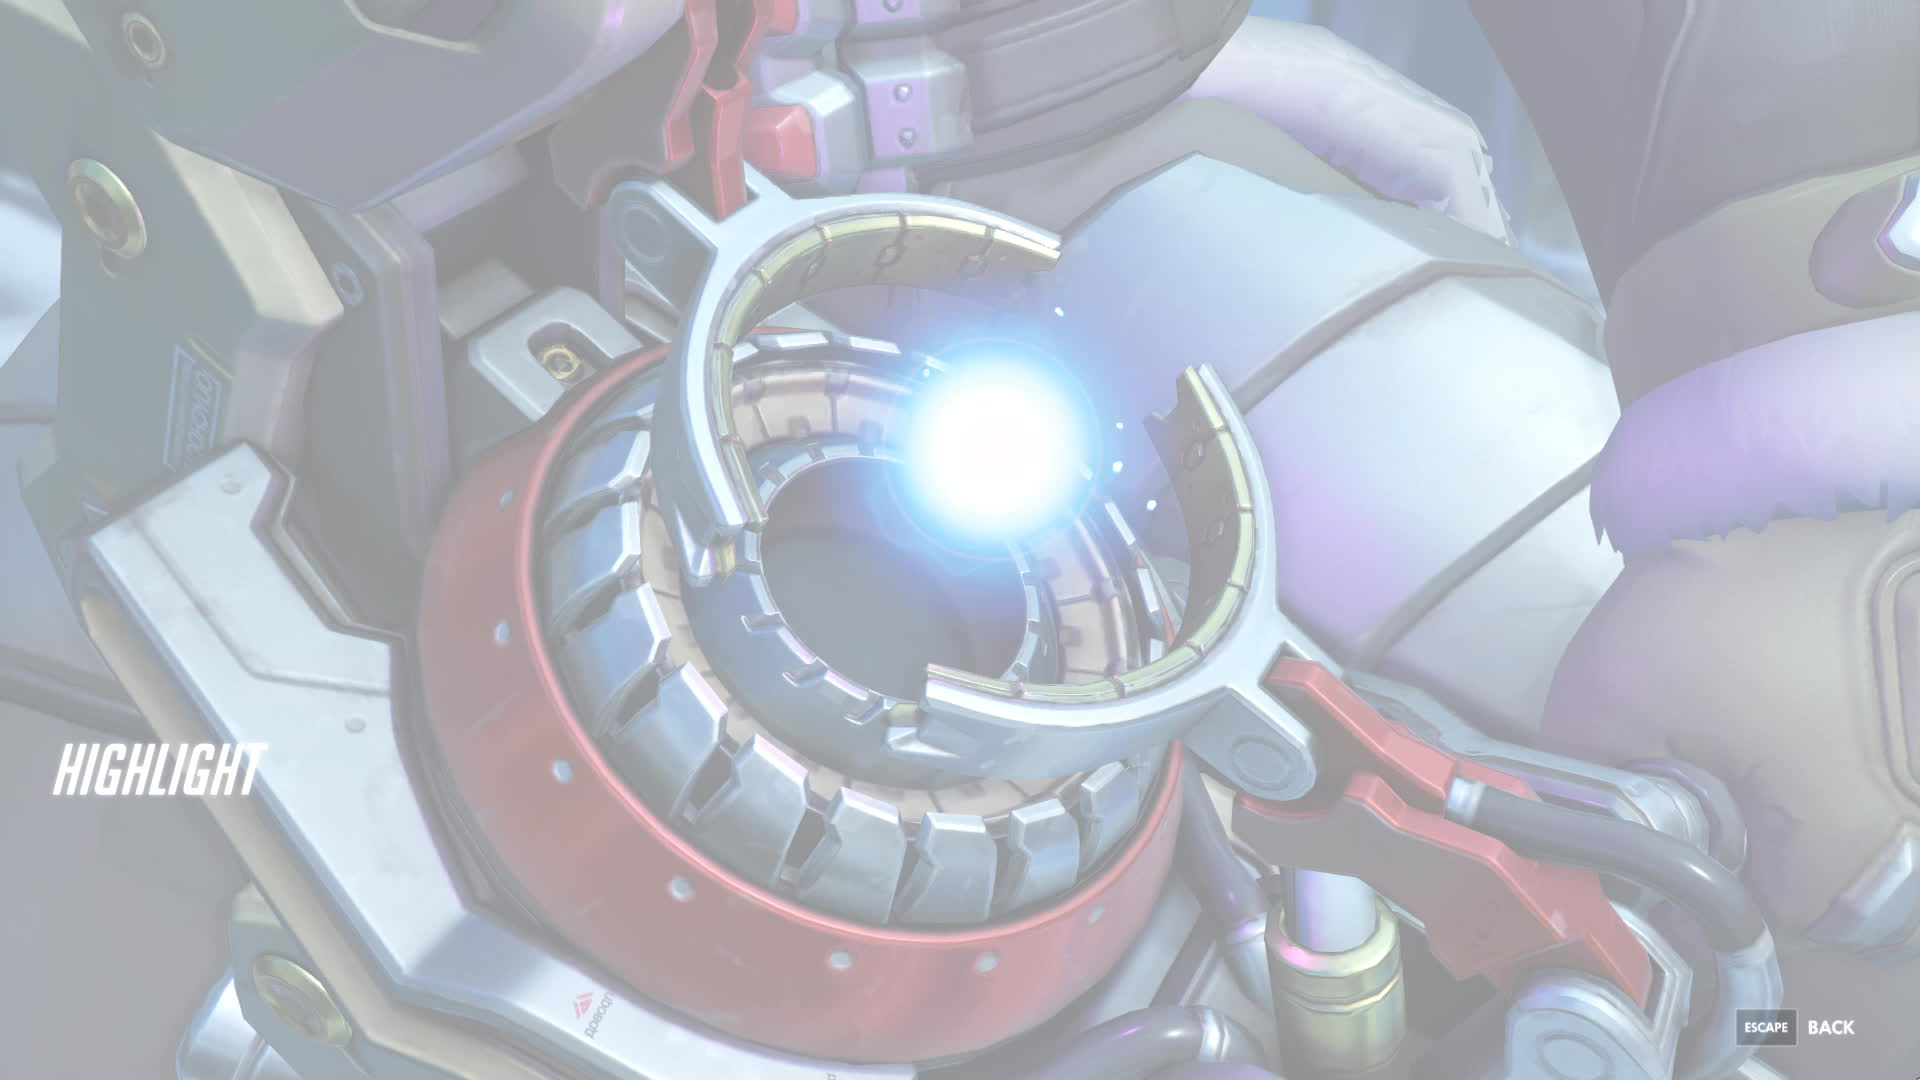 drycleanonly, overwatch, shield GIFs